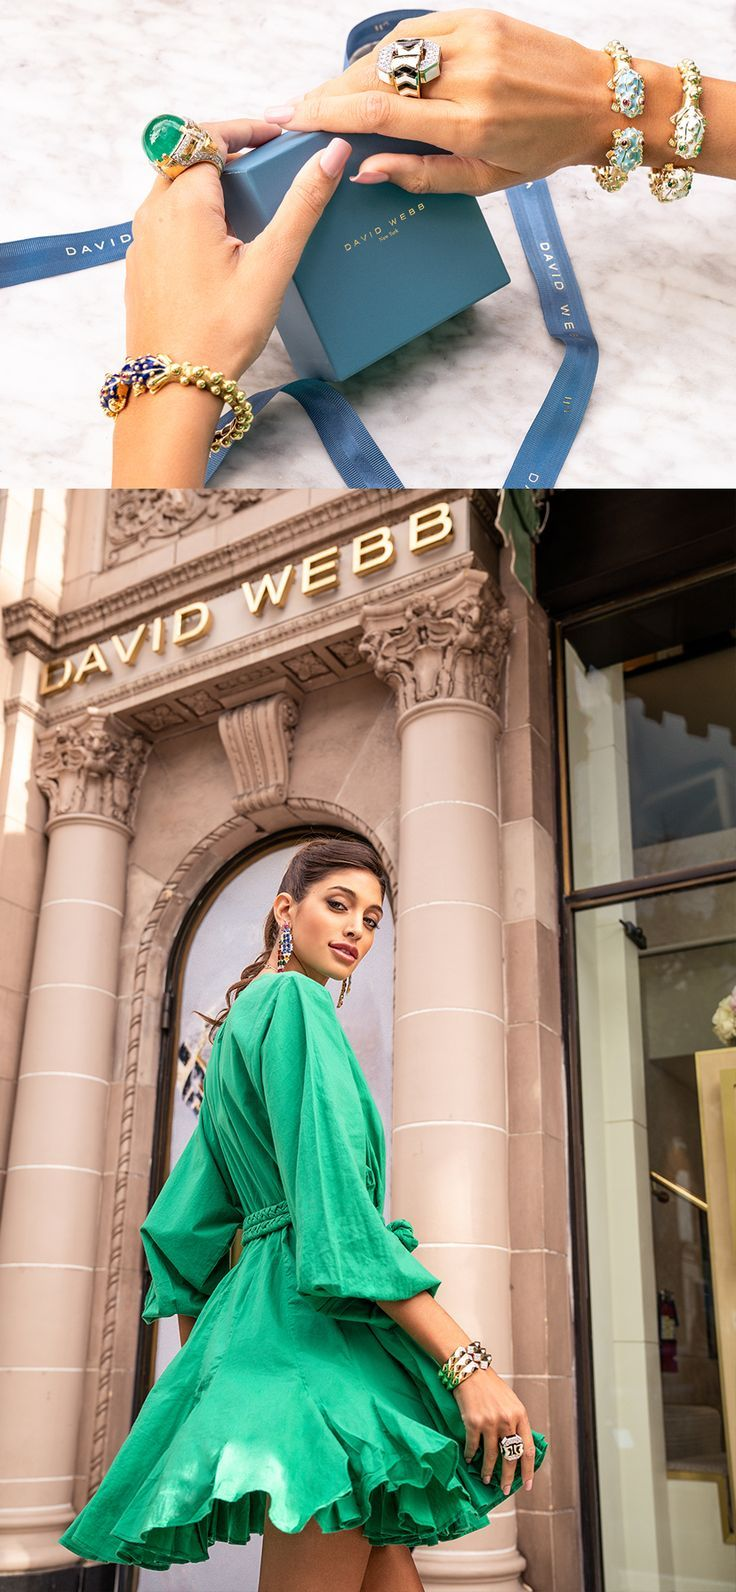 Step into a world of glamour in this jewelry shoot with jewels by David Webb. Los Angeles Jewelry Shoot | David Webb | California Jewelry Photographer | David Webb Photoshoot | Los Angeles Photographer | Beverly Hills Wilshire Hotel | Jewelry Photographer | Beverly Hills |    #davidwebb #jewelryphotoshoot #laphotographer @laurenlnewman